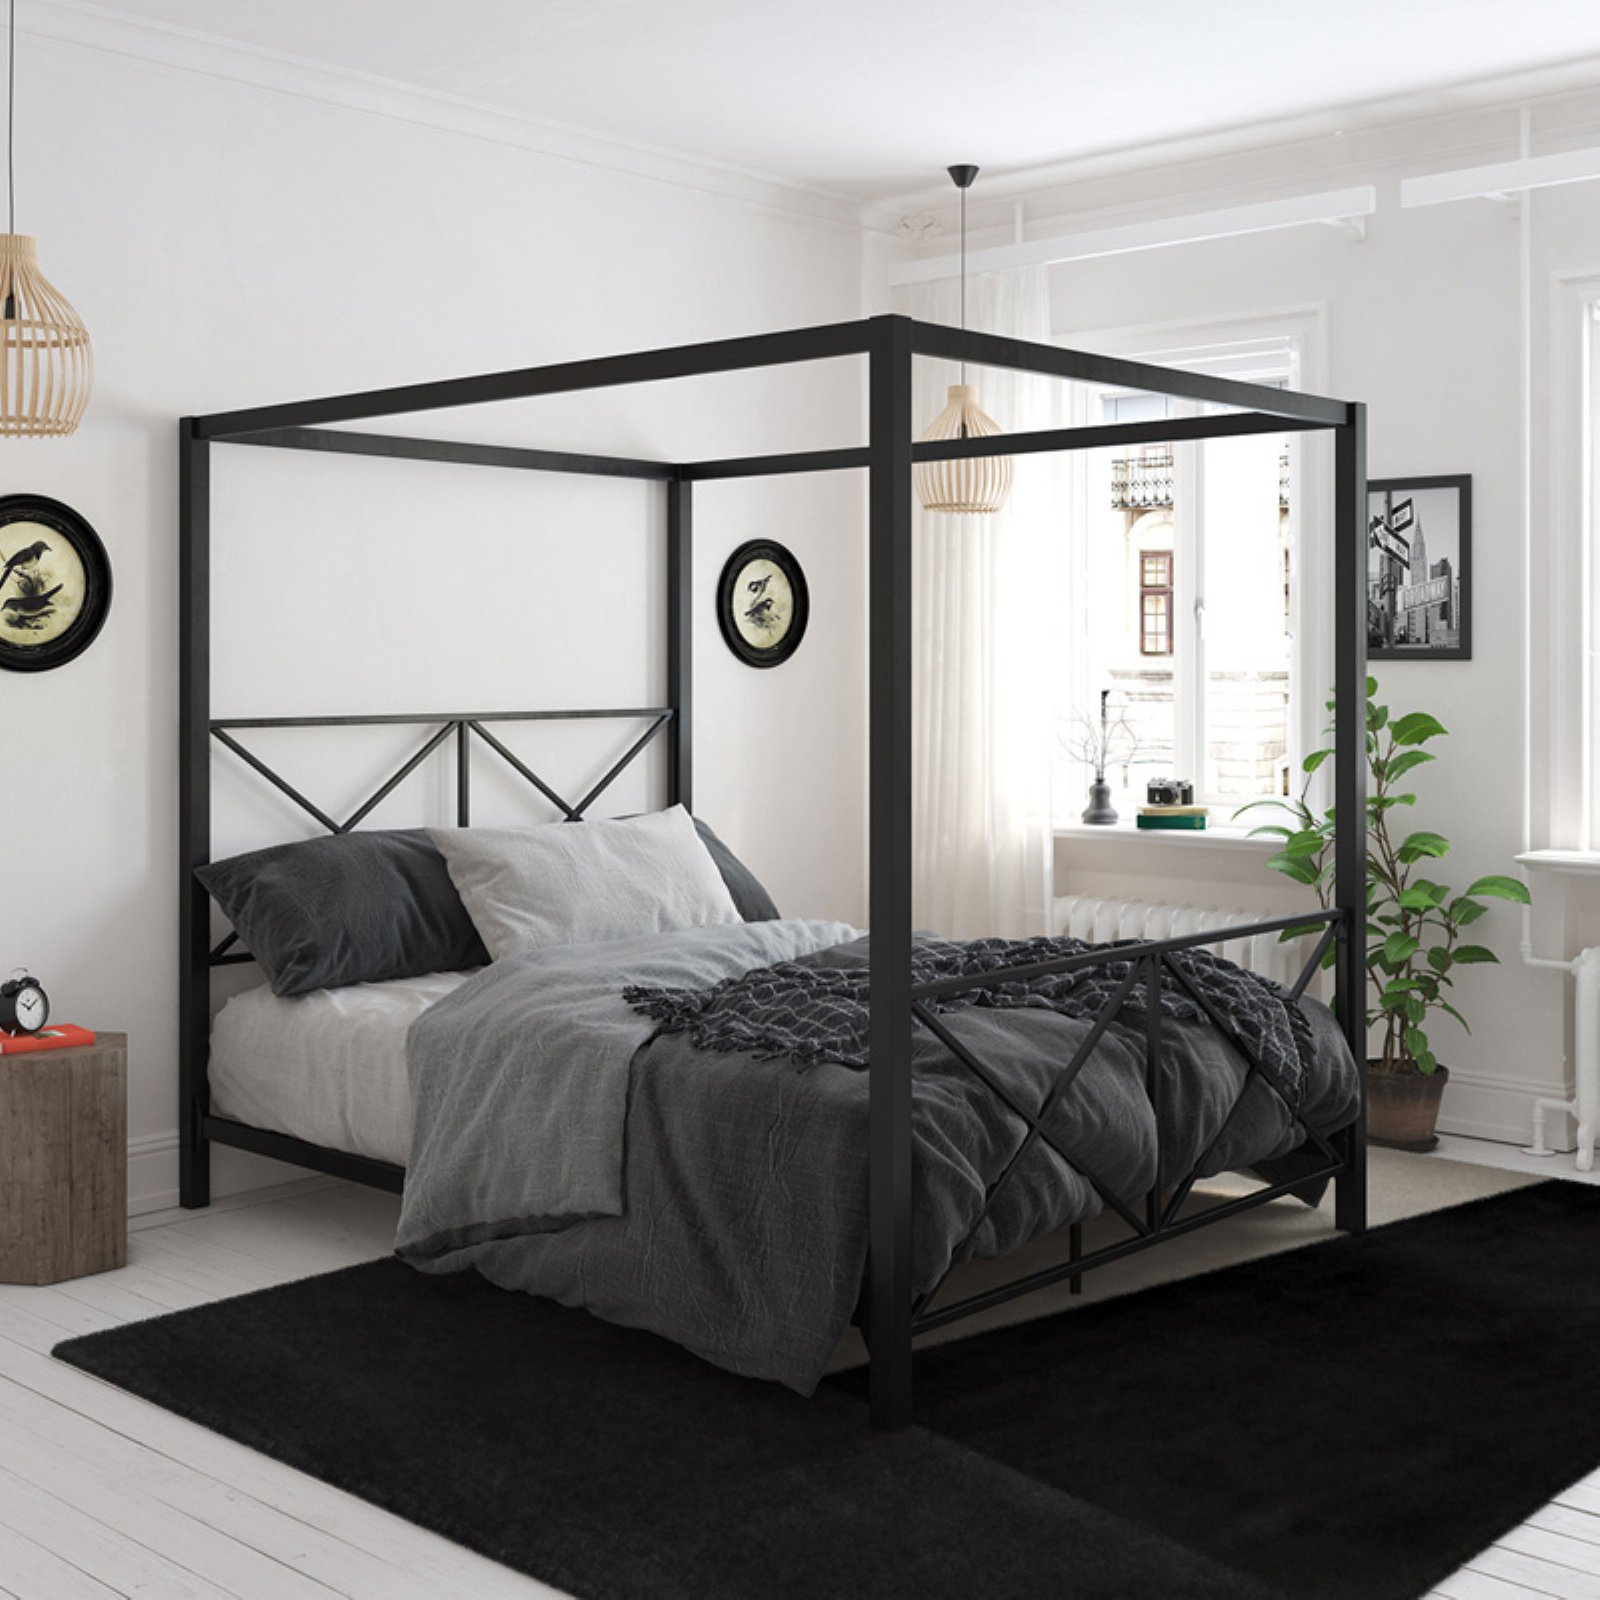 Dhp Rosedale Metal Canopy Bed Frame Multiple Sizes Multiple Colors